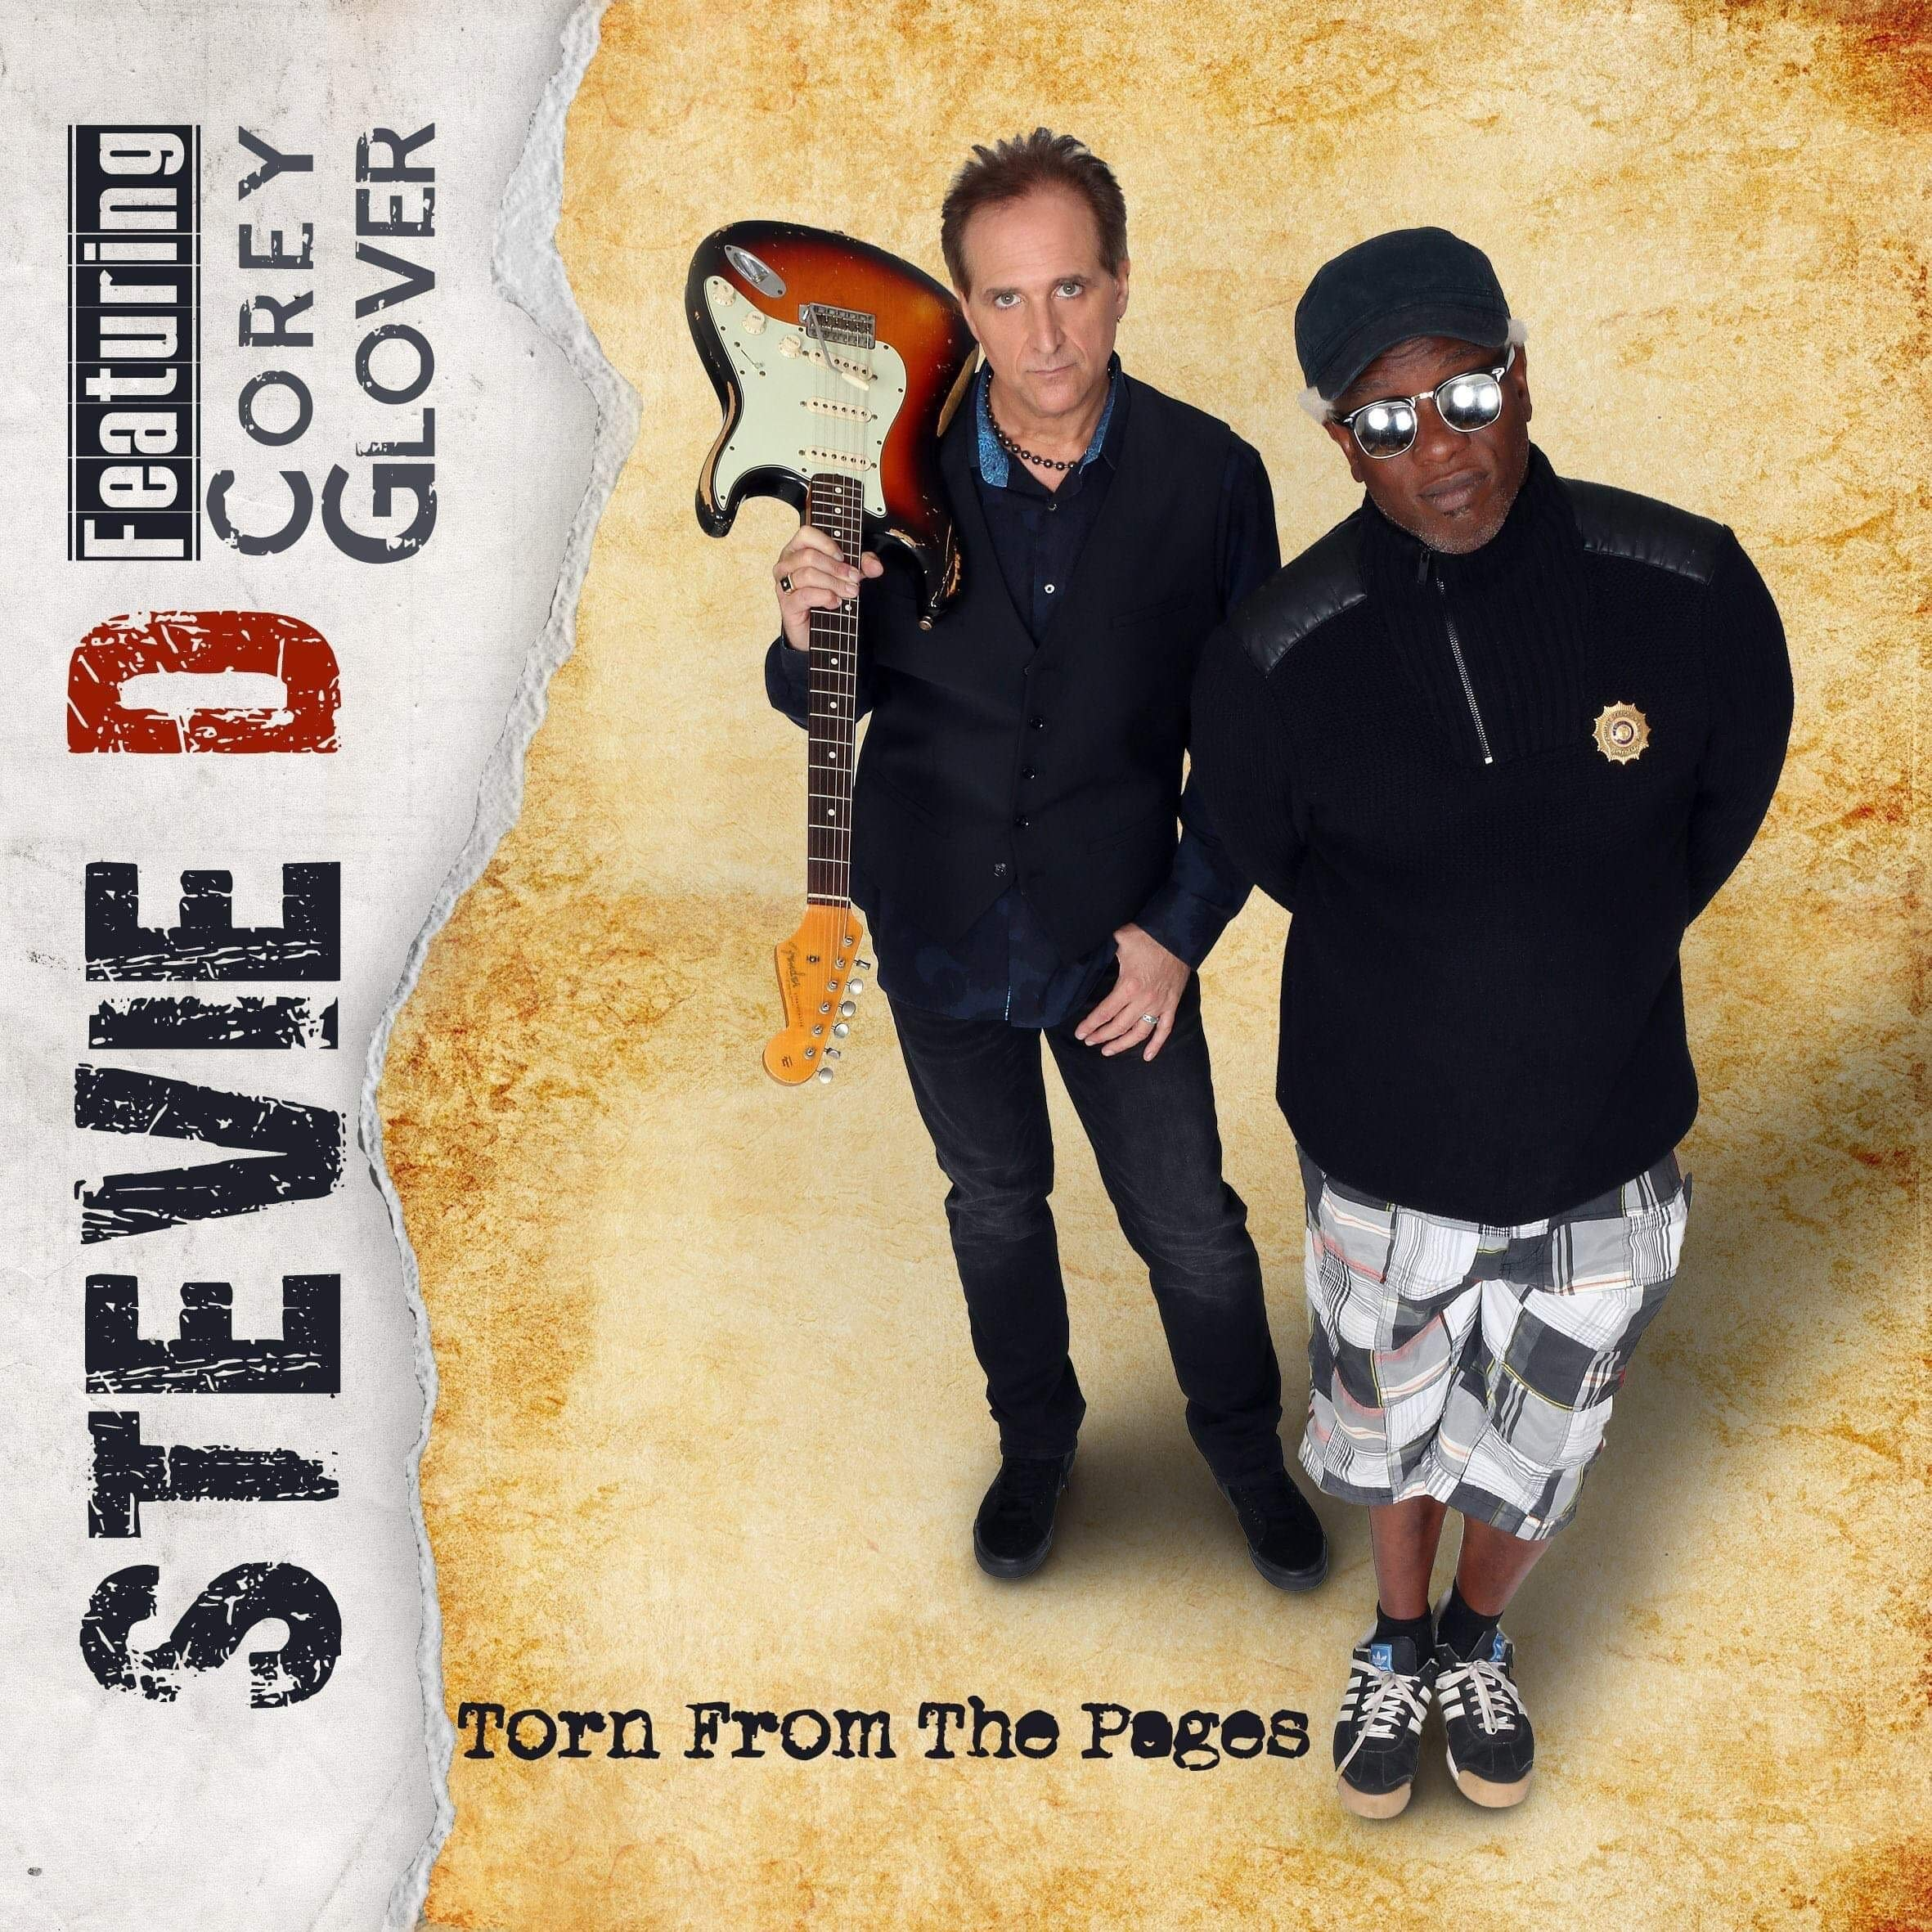 CD : Stevie D. / Glover corey - Torn From The Pages